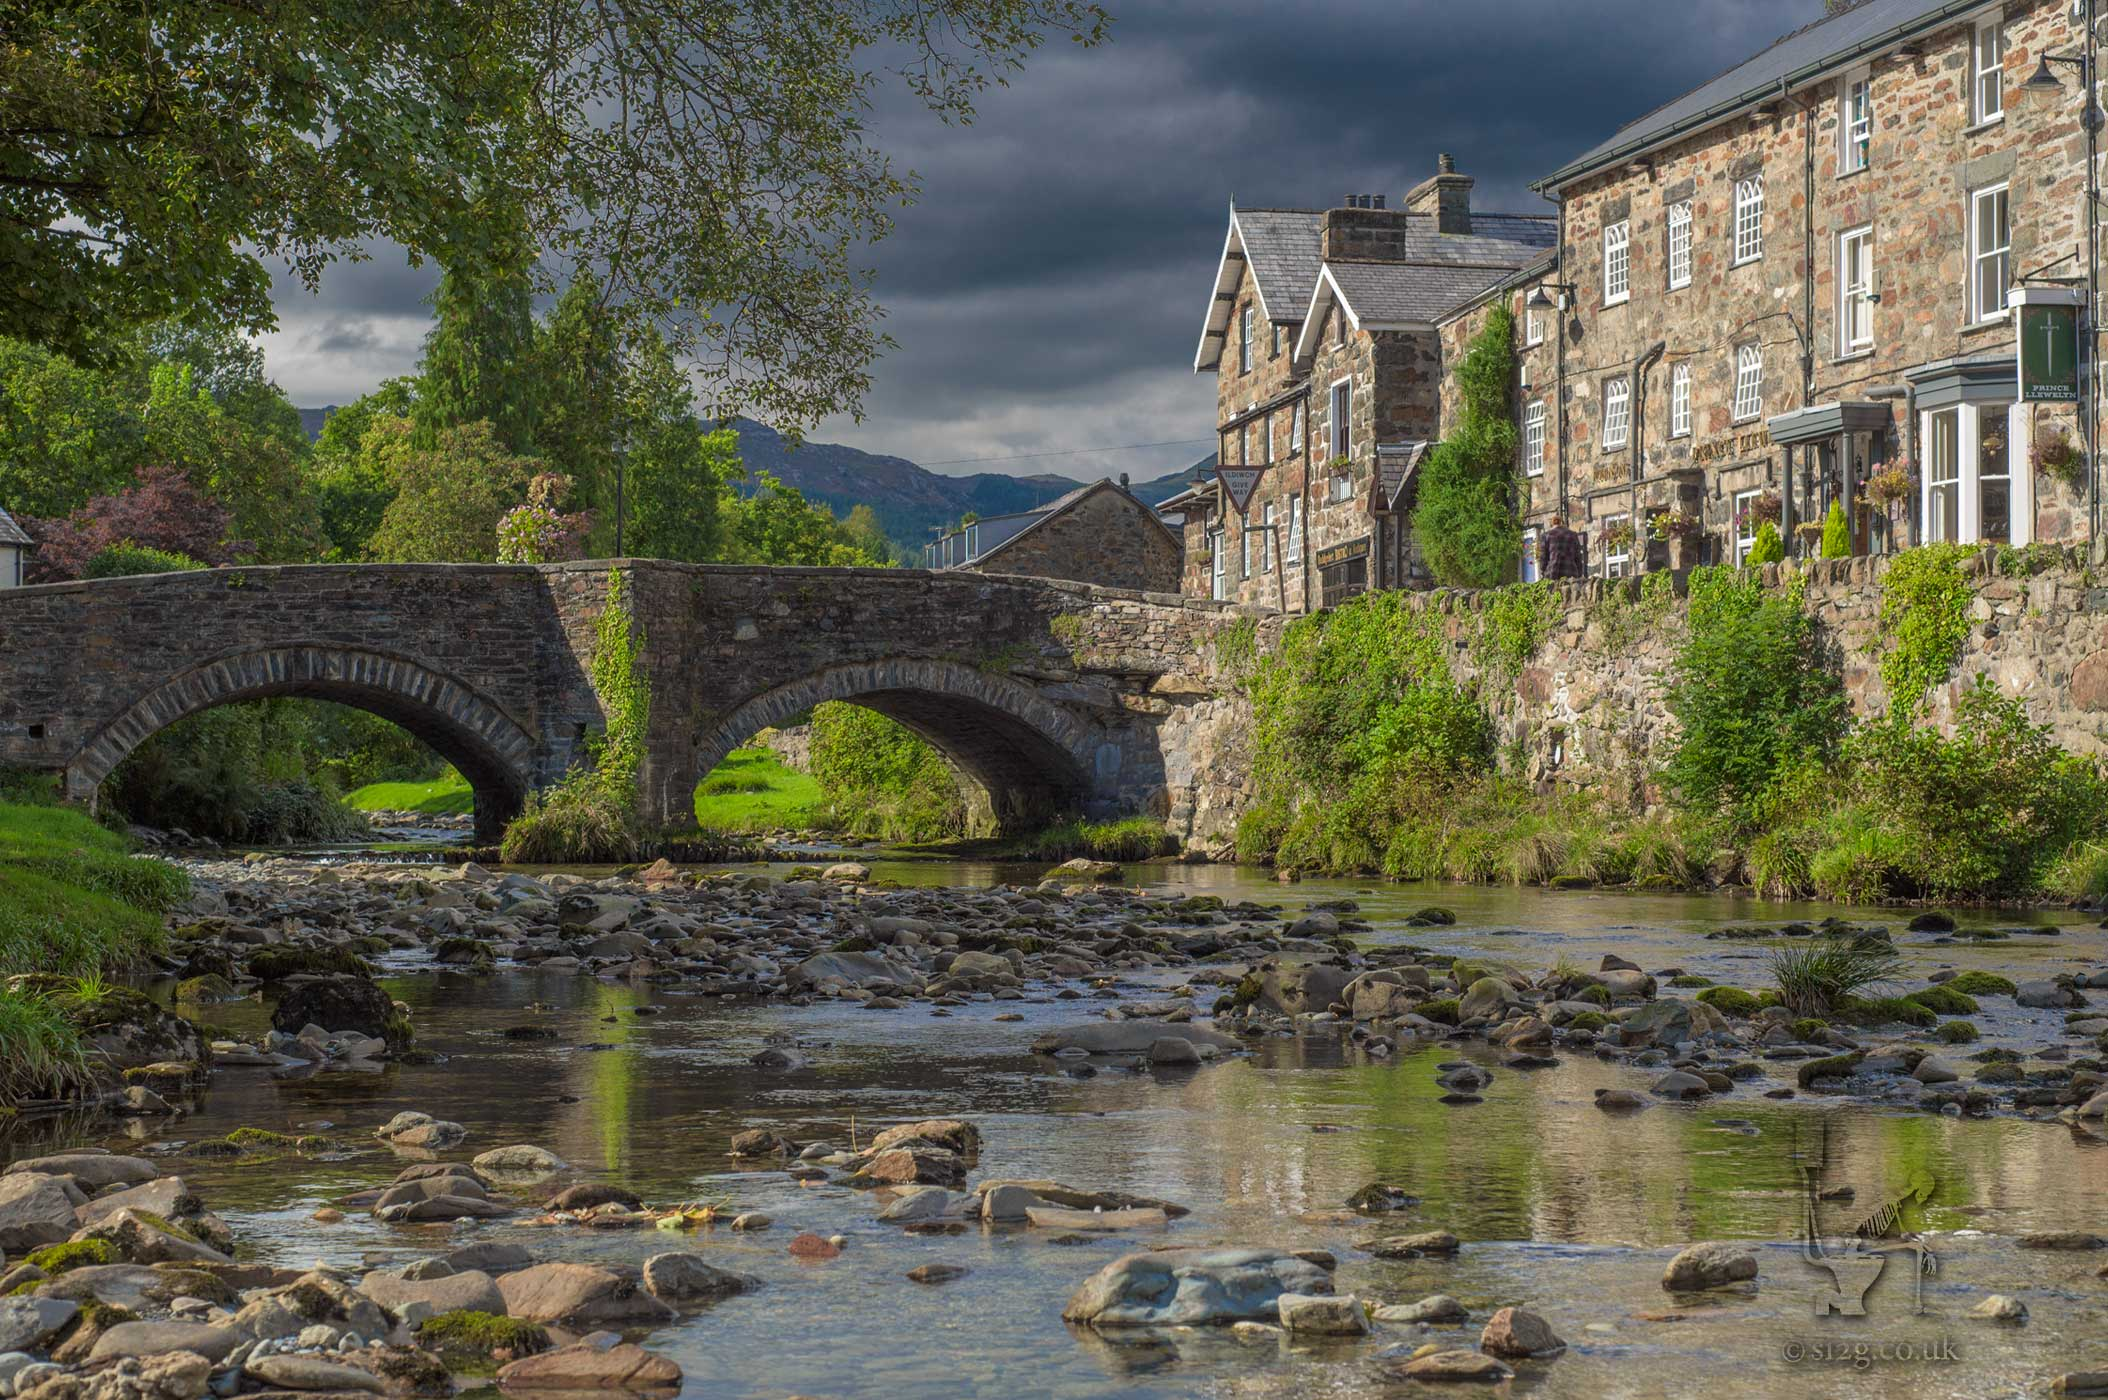 Chocolate Box Village - This picturesque stone bridge and country pub is situated in the village of Beddgelert in Snowdonia, Wales.  Wanting to get an edge over the other photographers milling around that day, I decided to climb over the stone wall paddle about in the river to get that chocolate box image of serenity with no cars or people in shot.